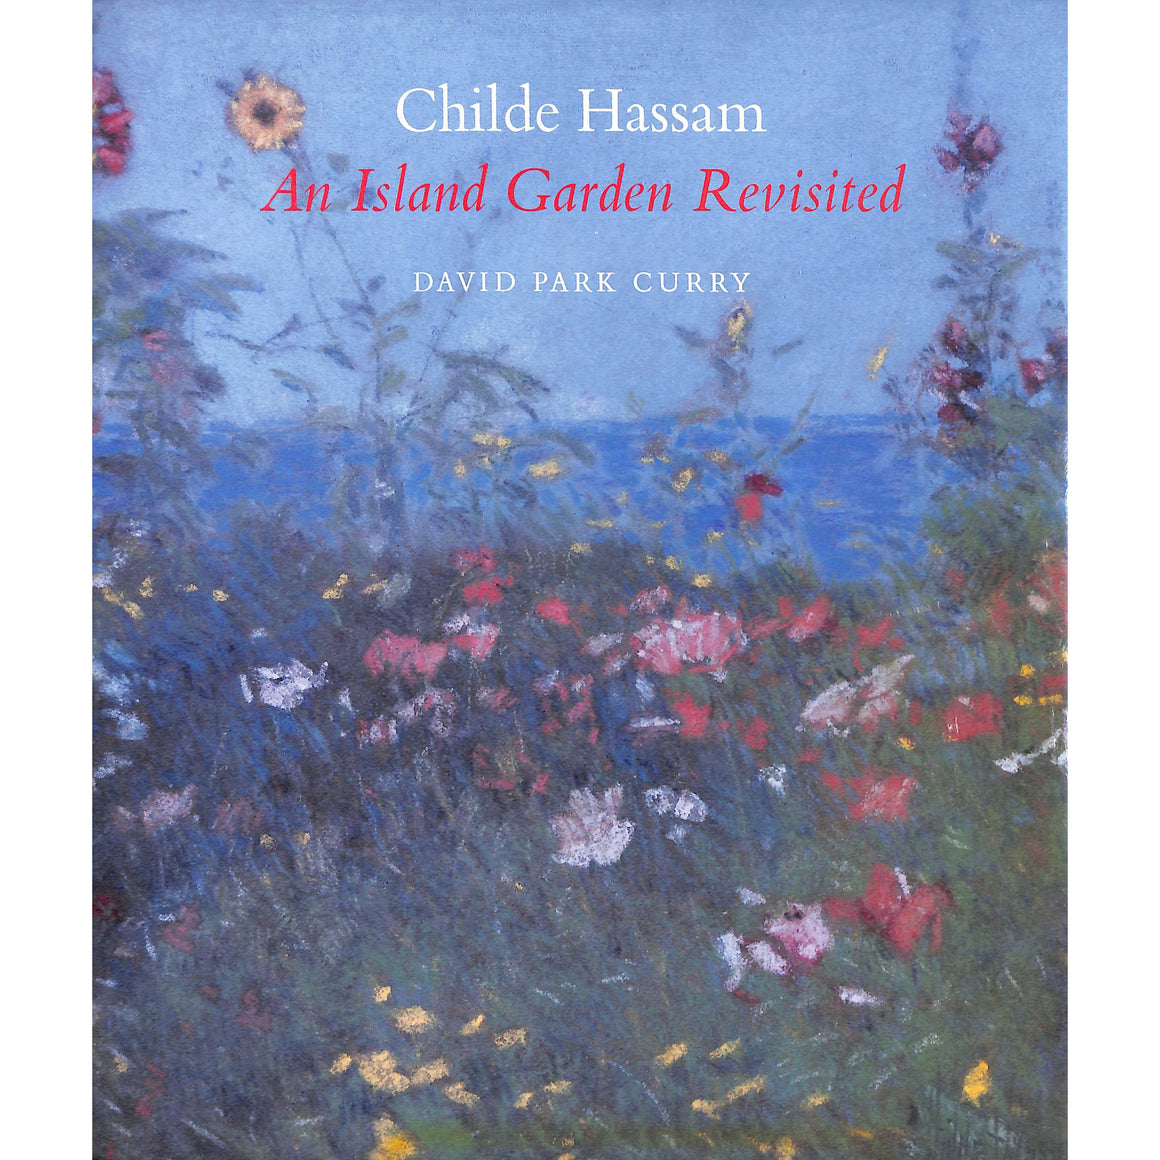 Childe Hassam: An Island Garden Revisited